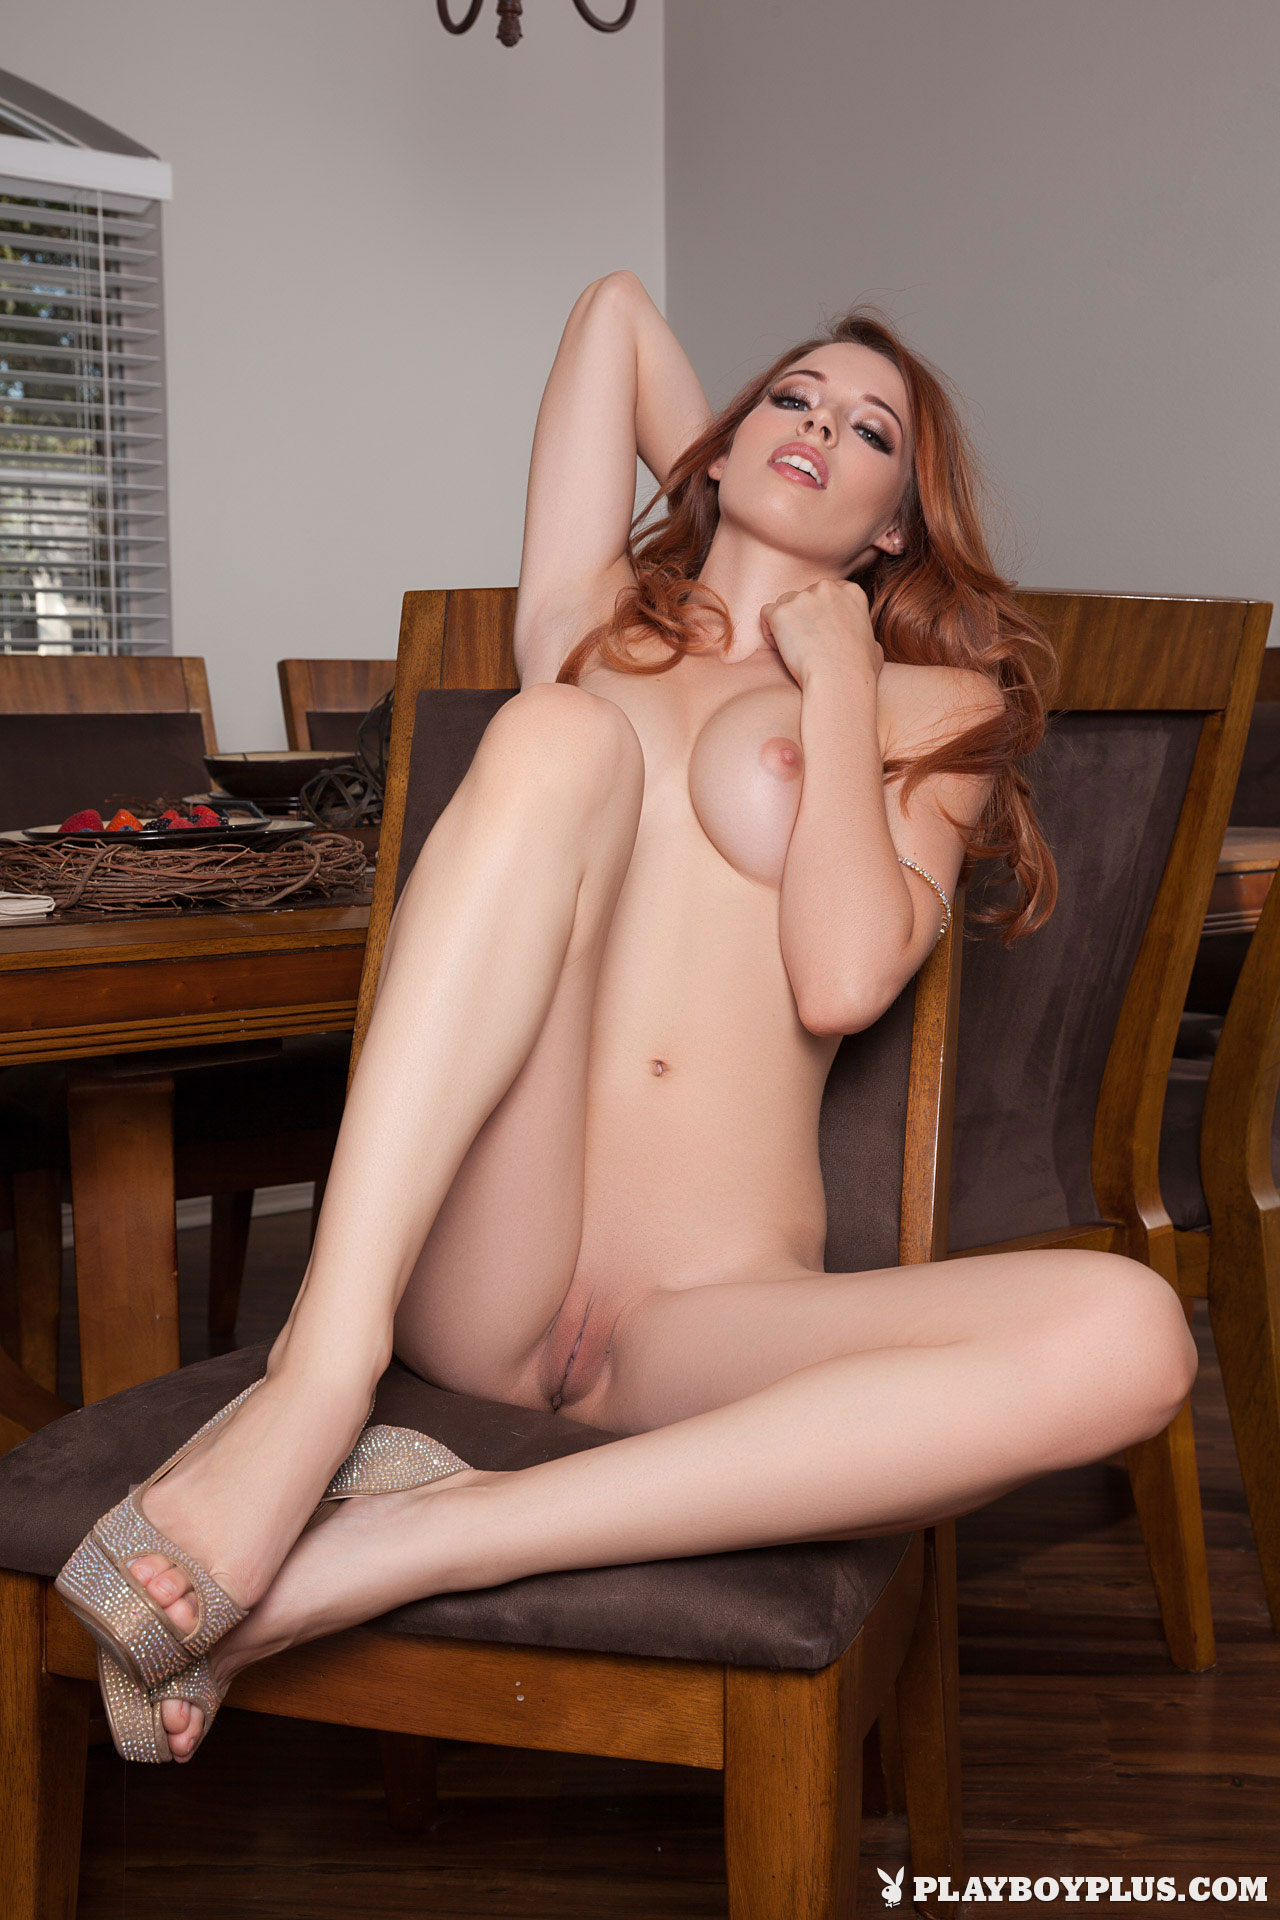 caitlin-mcswain-redhead-naked-table-playboy-14